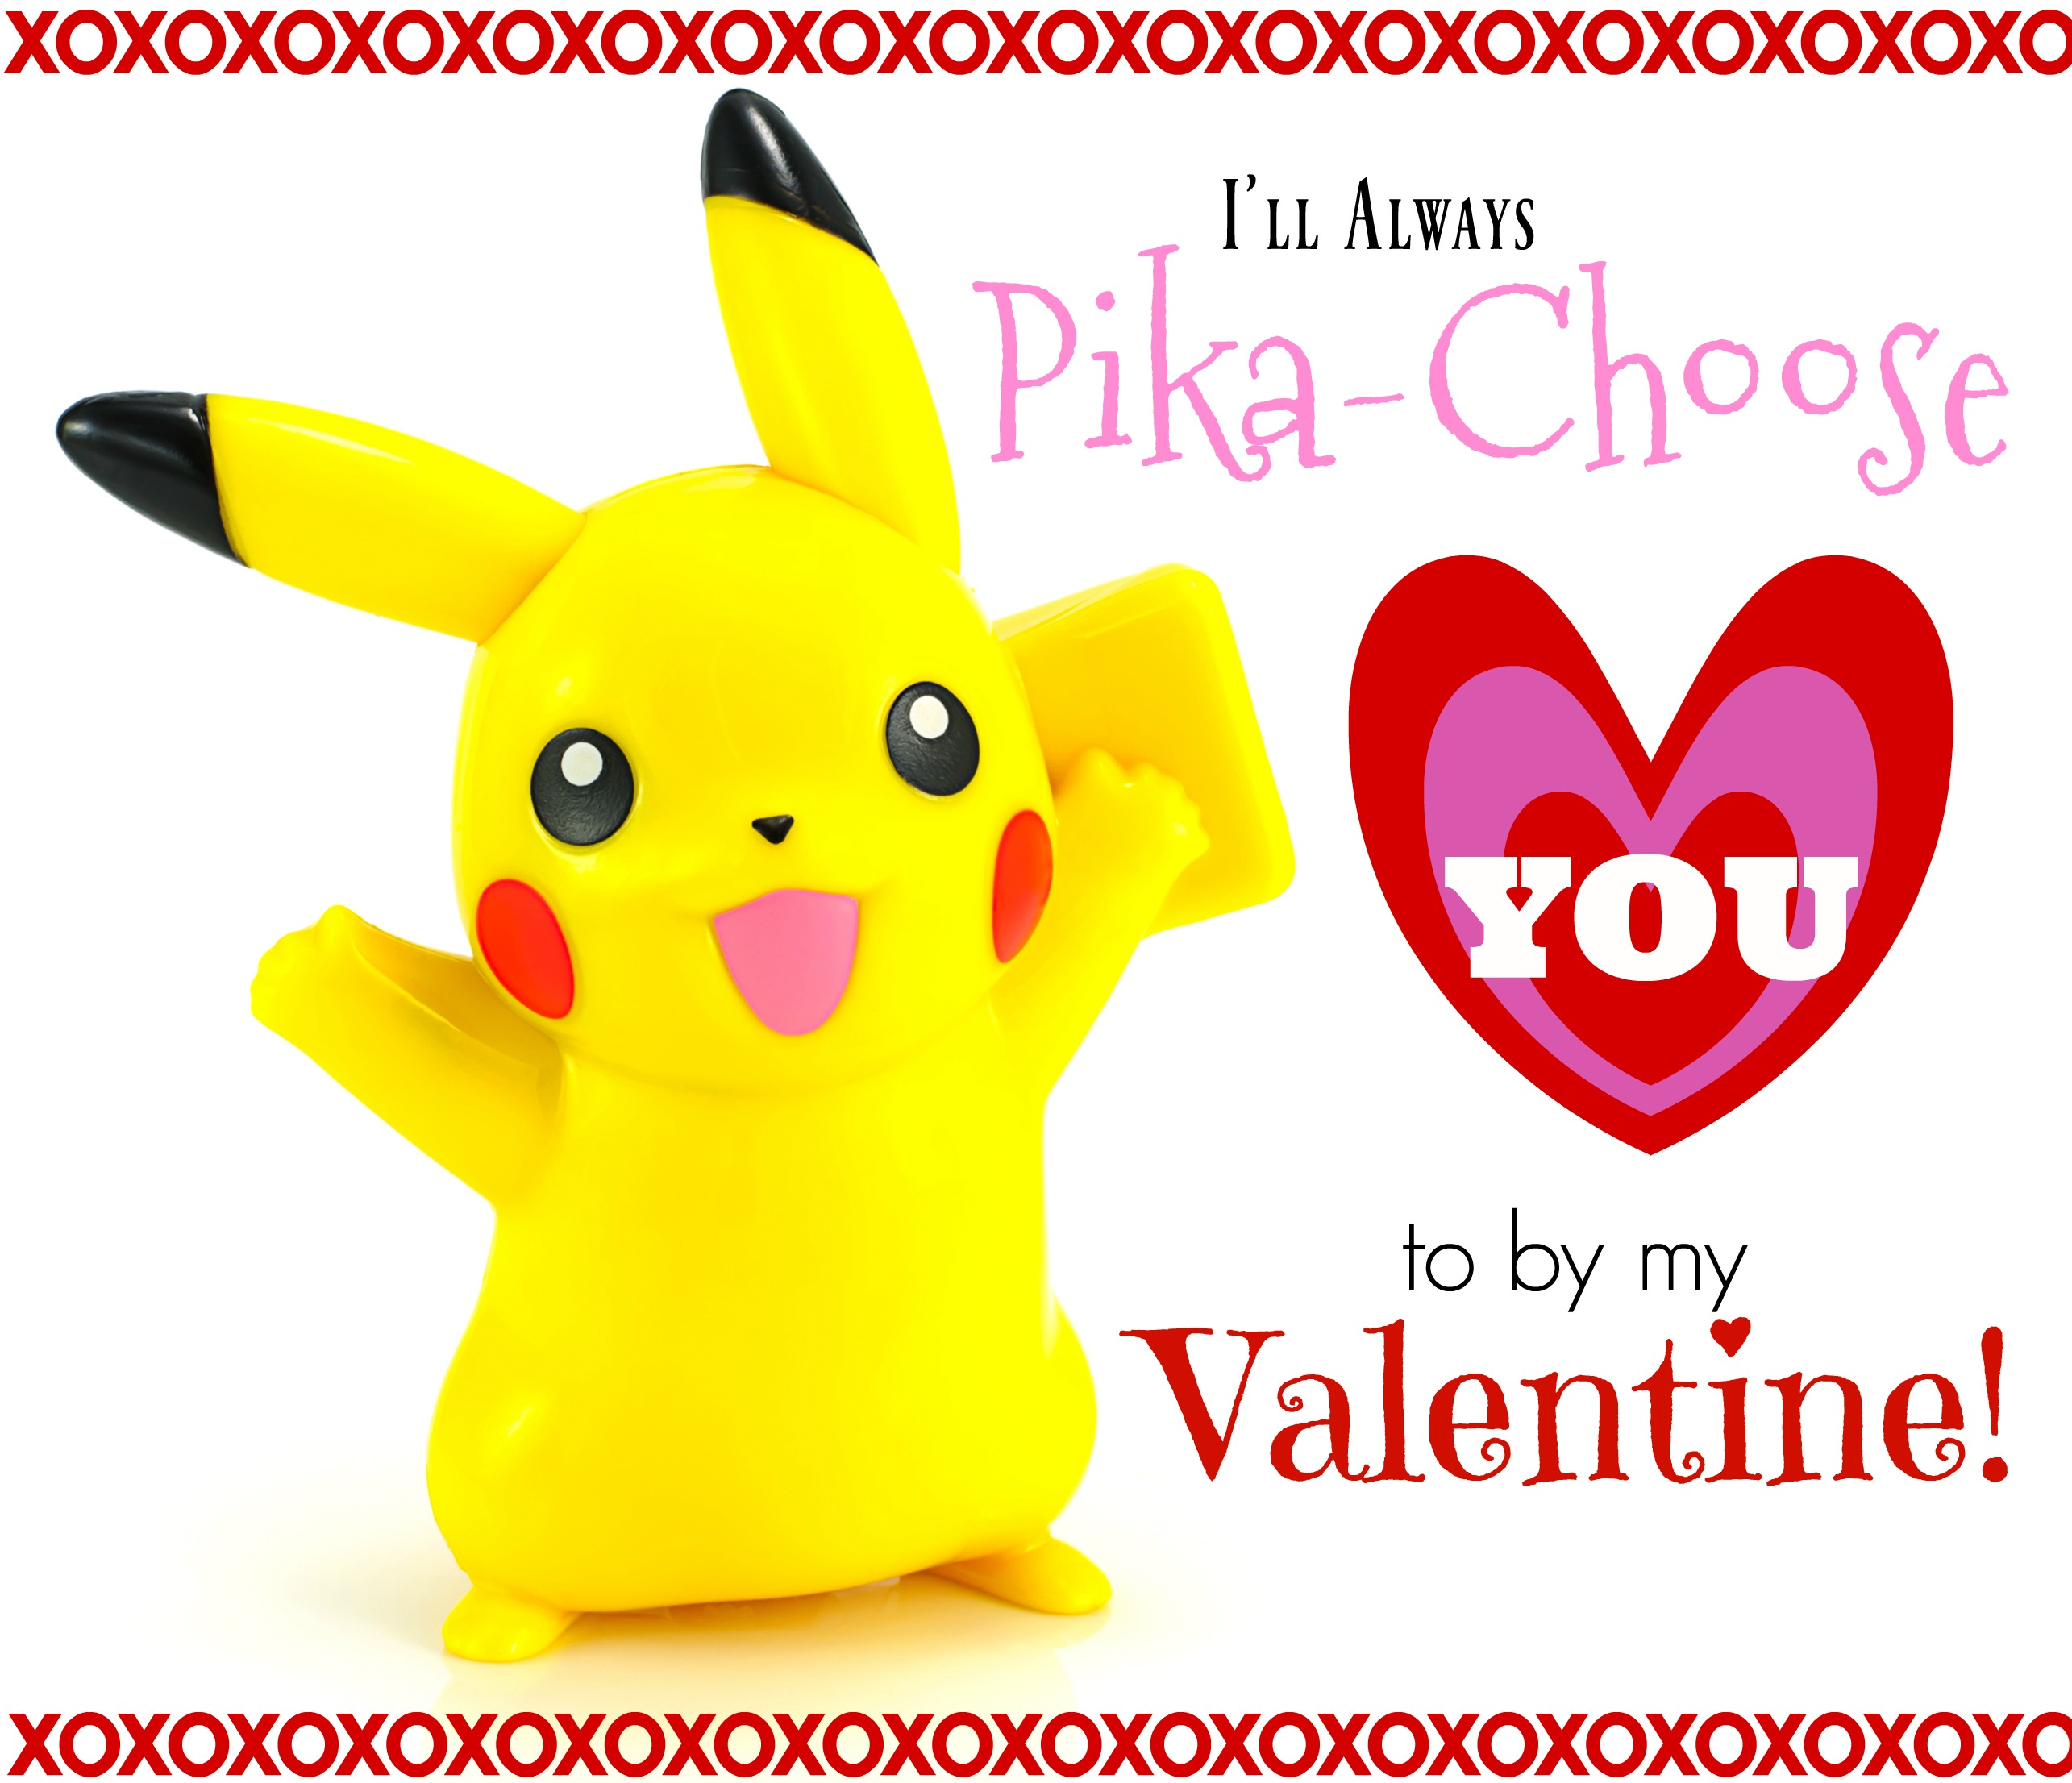 photo regarding Printable Pikachu titled Printable Pikachu Valentines Working day Playing cards - Mother Unleashed